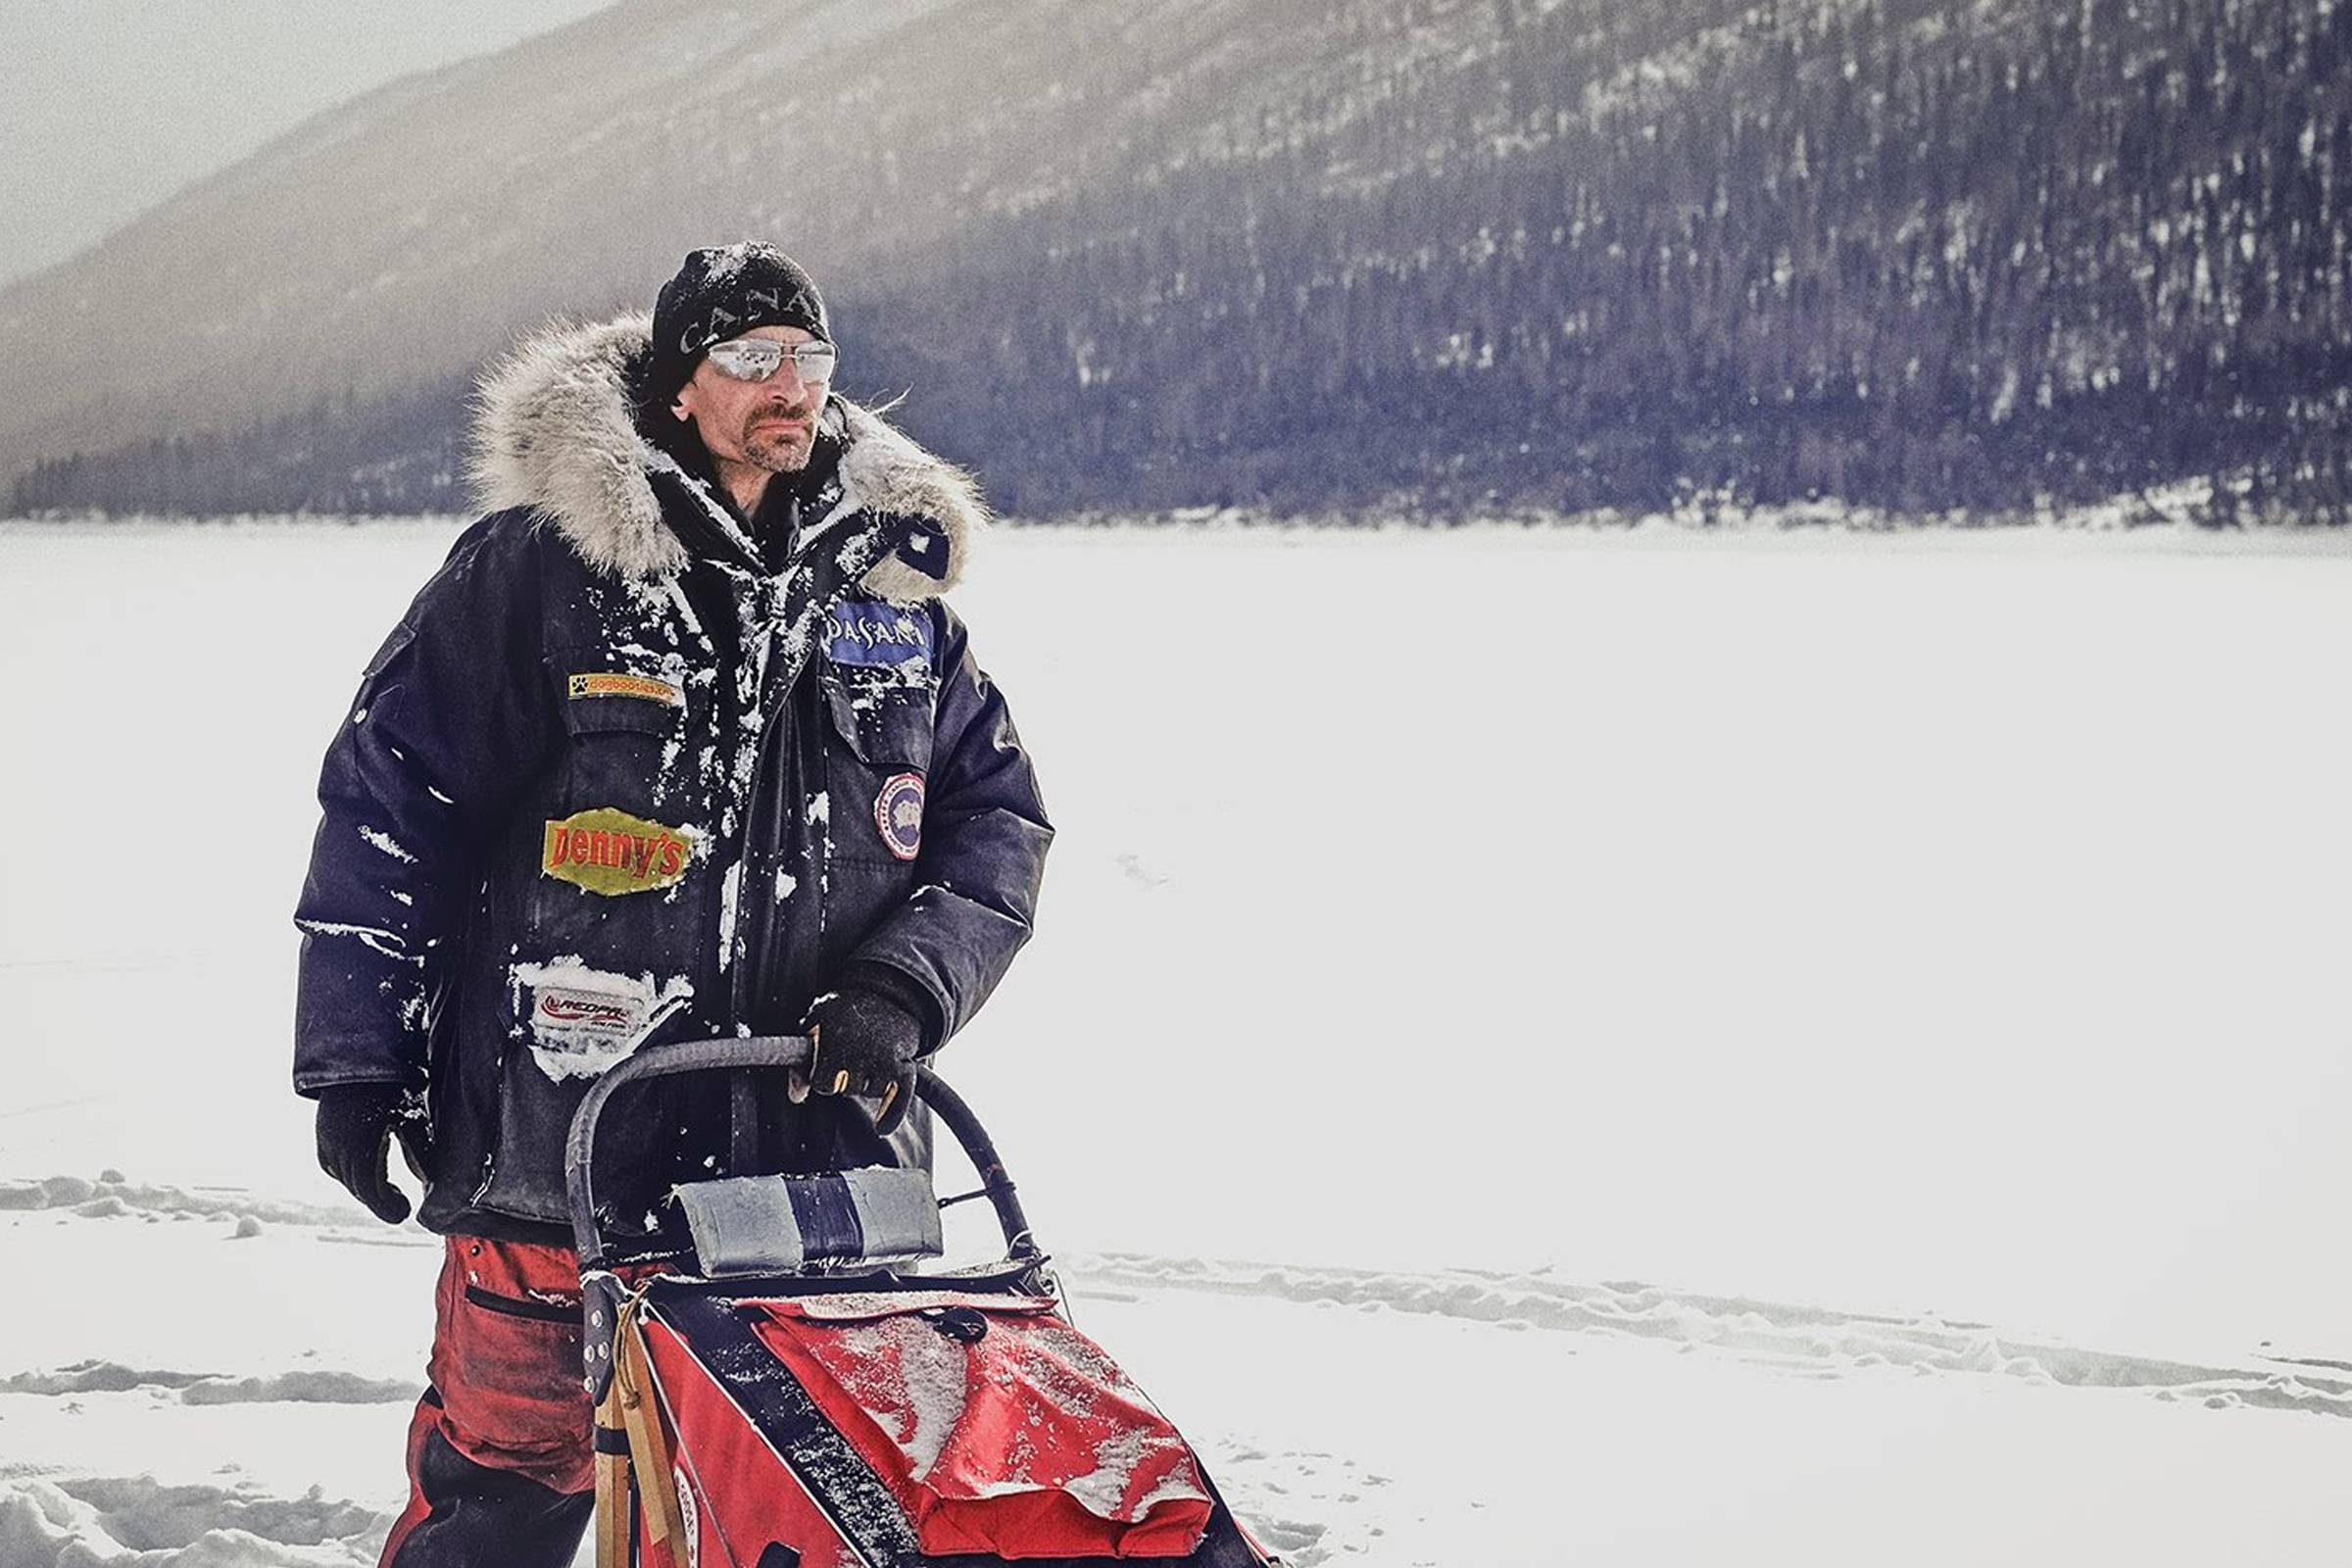 Lance Mackey, champion dogsled musher, in a Canada Goose